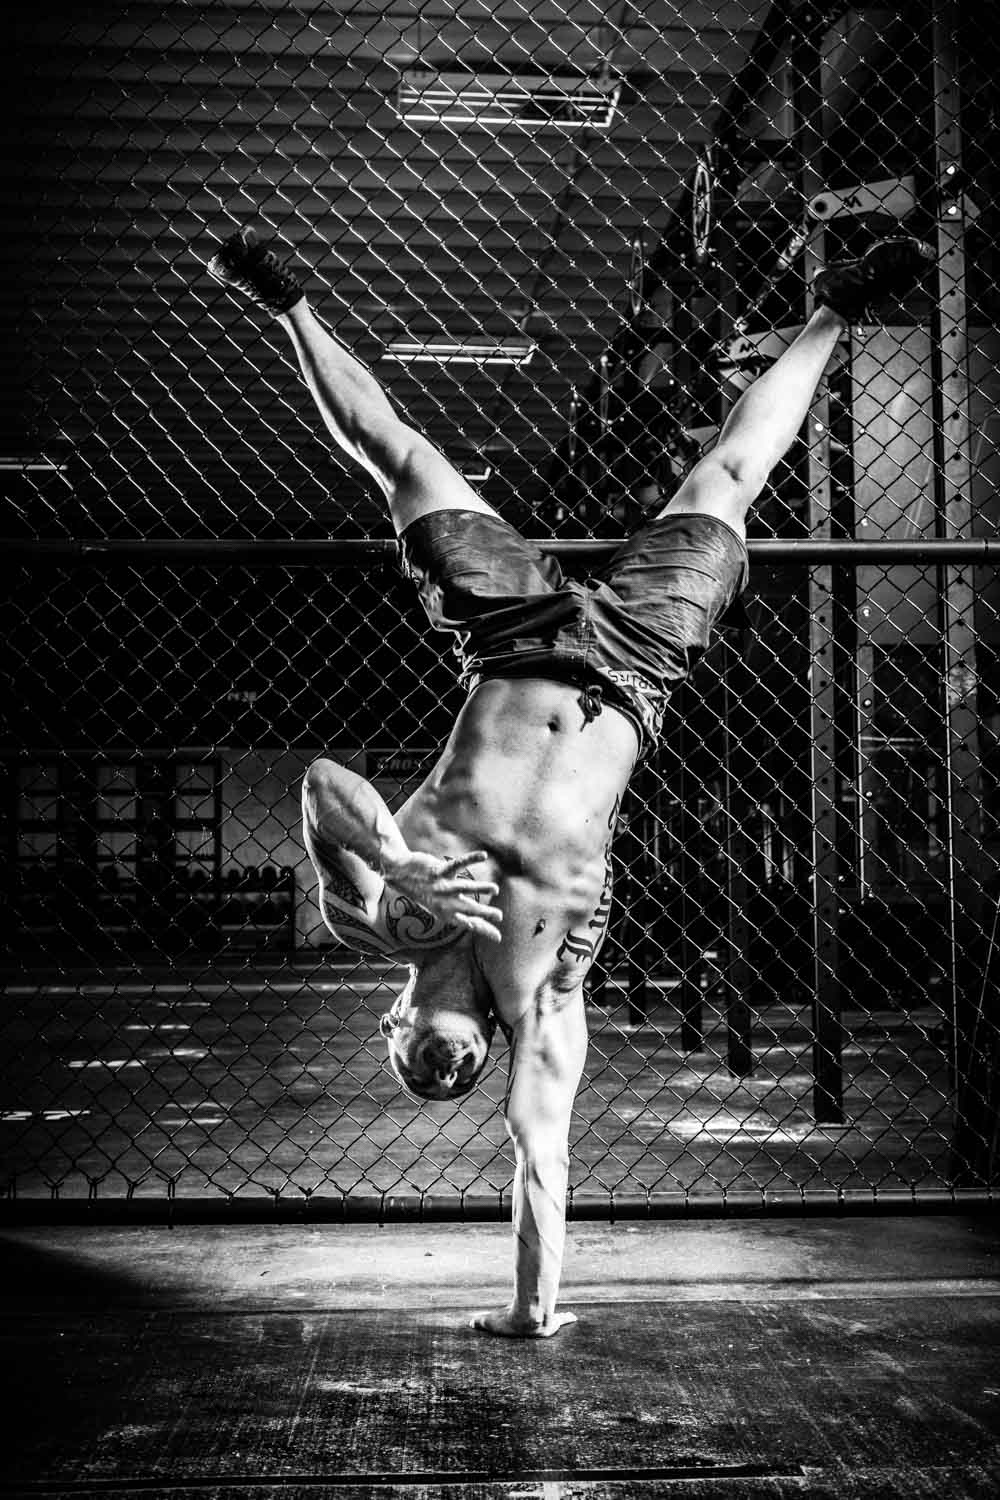 Man doing a Hand Stand